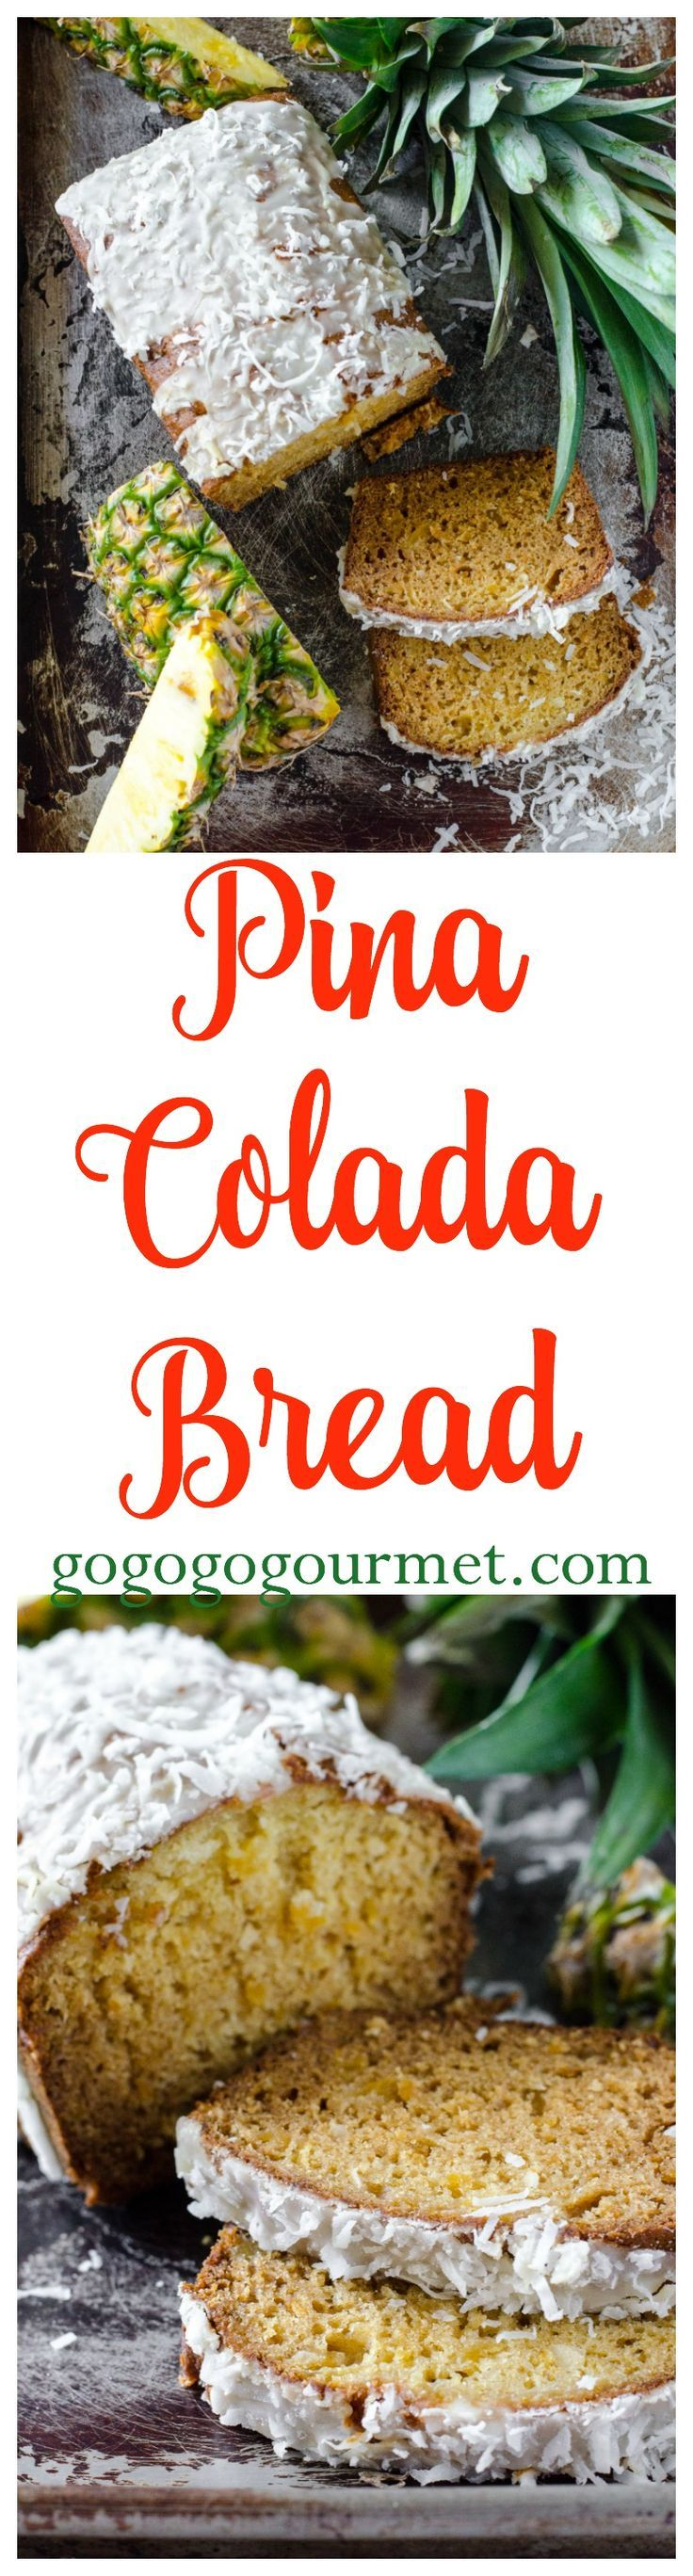 With its flavors of pineapple and coconut, this Pina Colada bread will take you to the tropics with every slice! | Go Go Go Gourmet @Go Go Go Gourmet